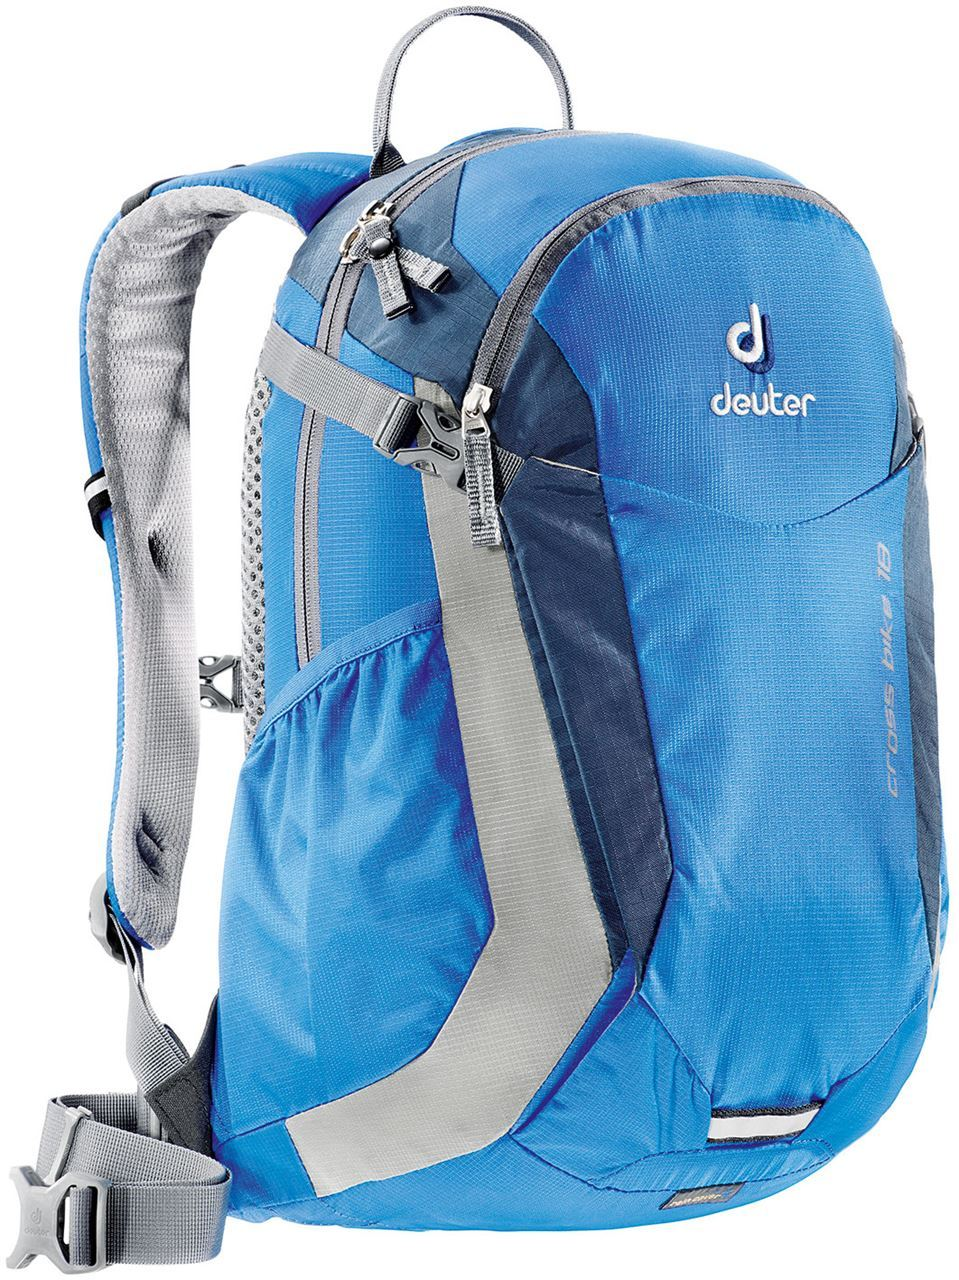 Deuter Cross Bike 18 - Cool Blue - Cycles Galleria Melbourne